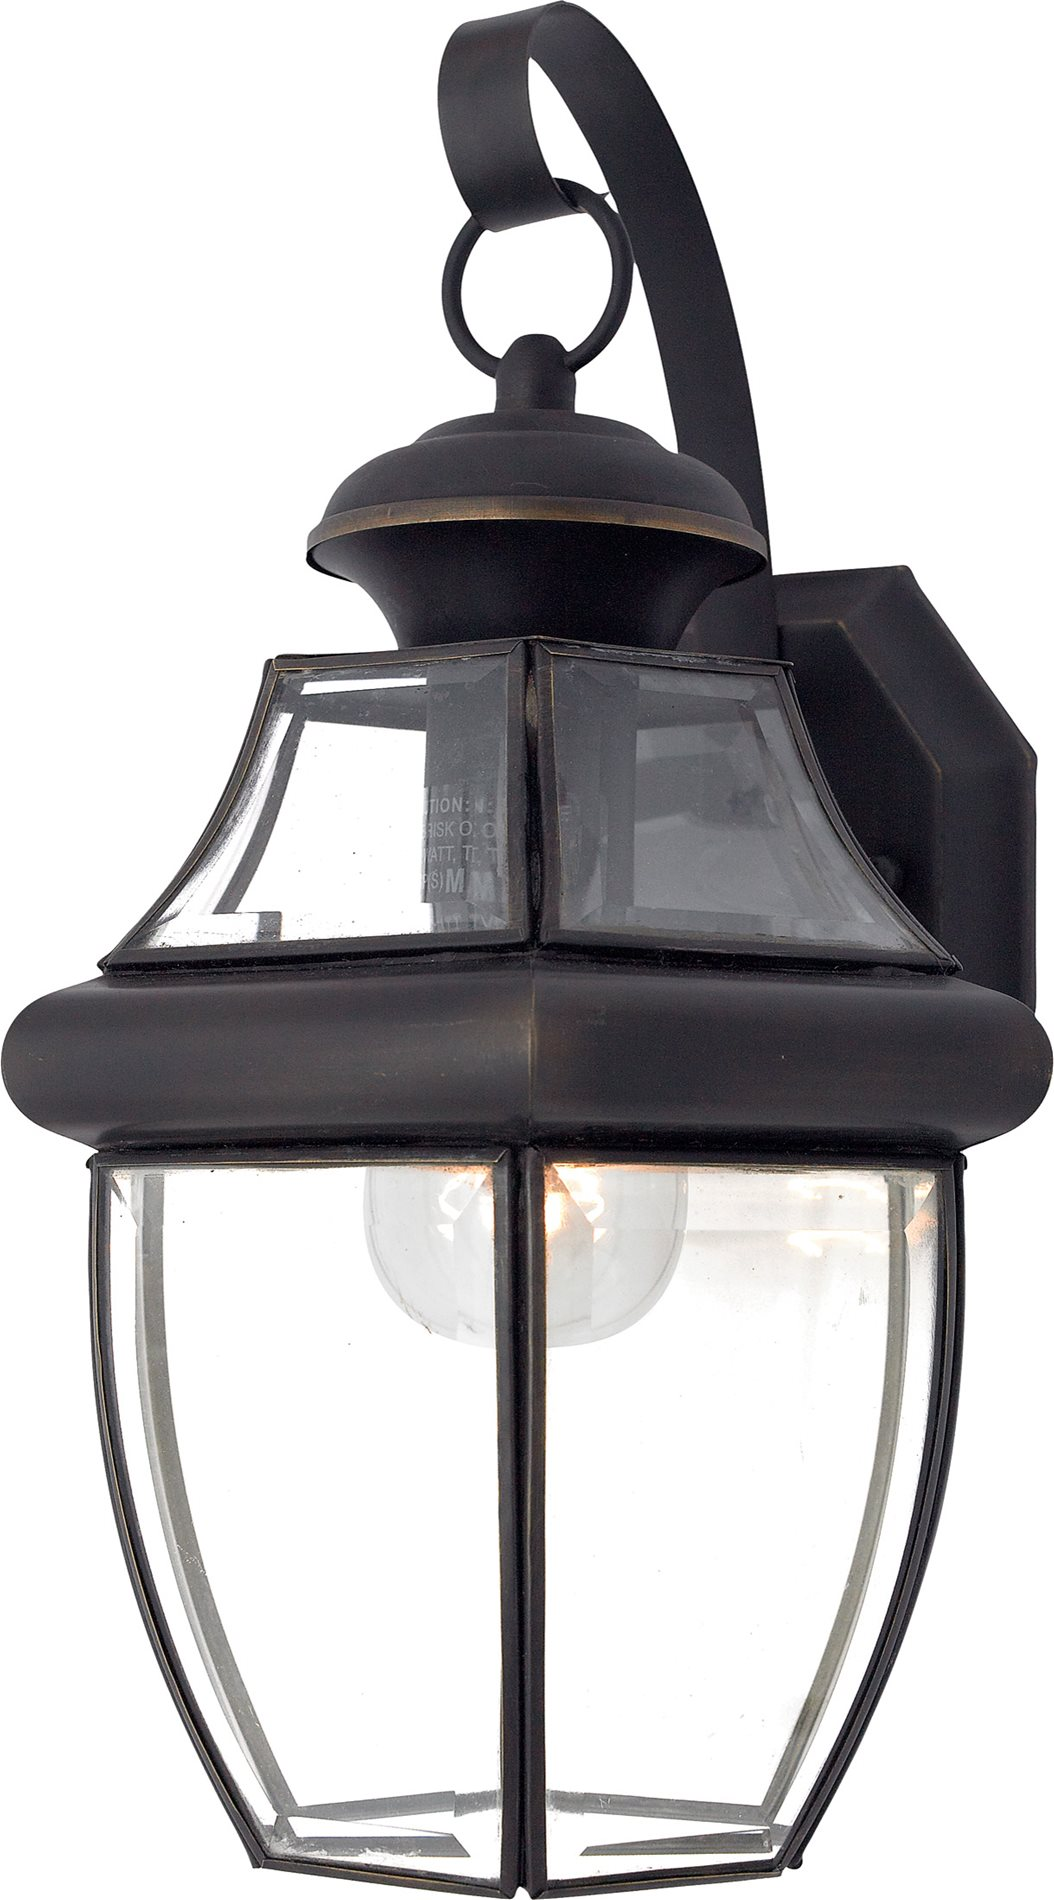 Quoizel Ny8316z Newbury Traditional Outdoor Wall Sconce Qz